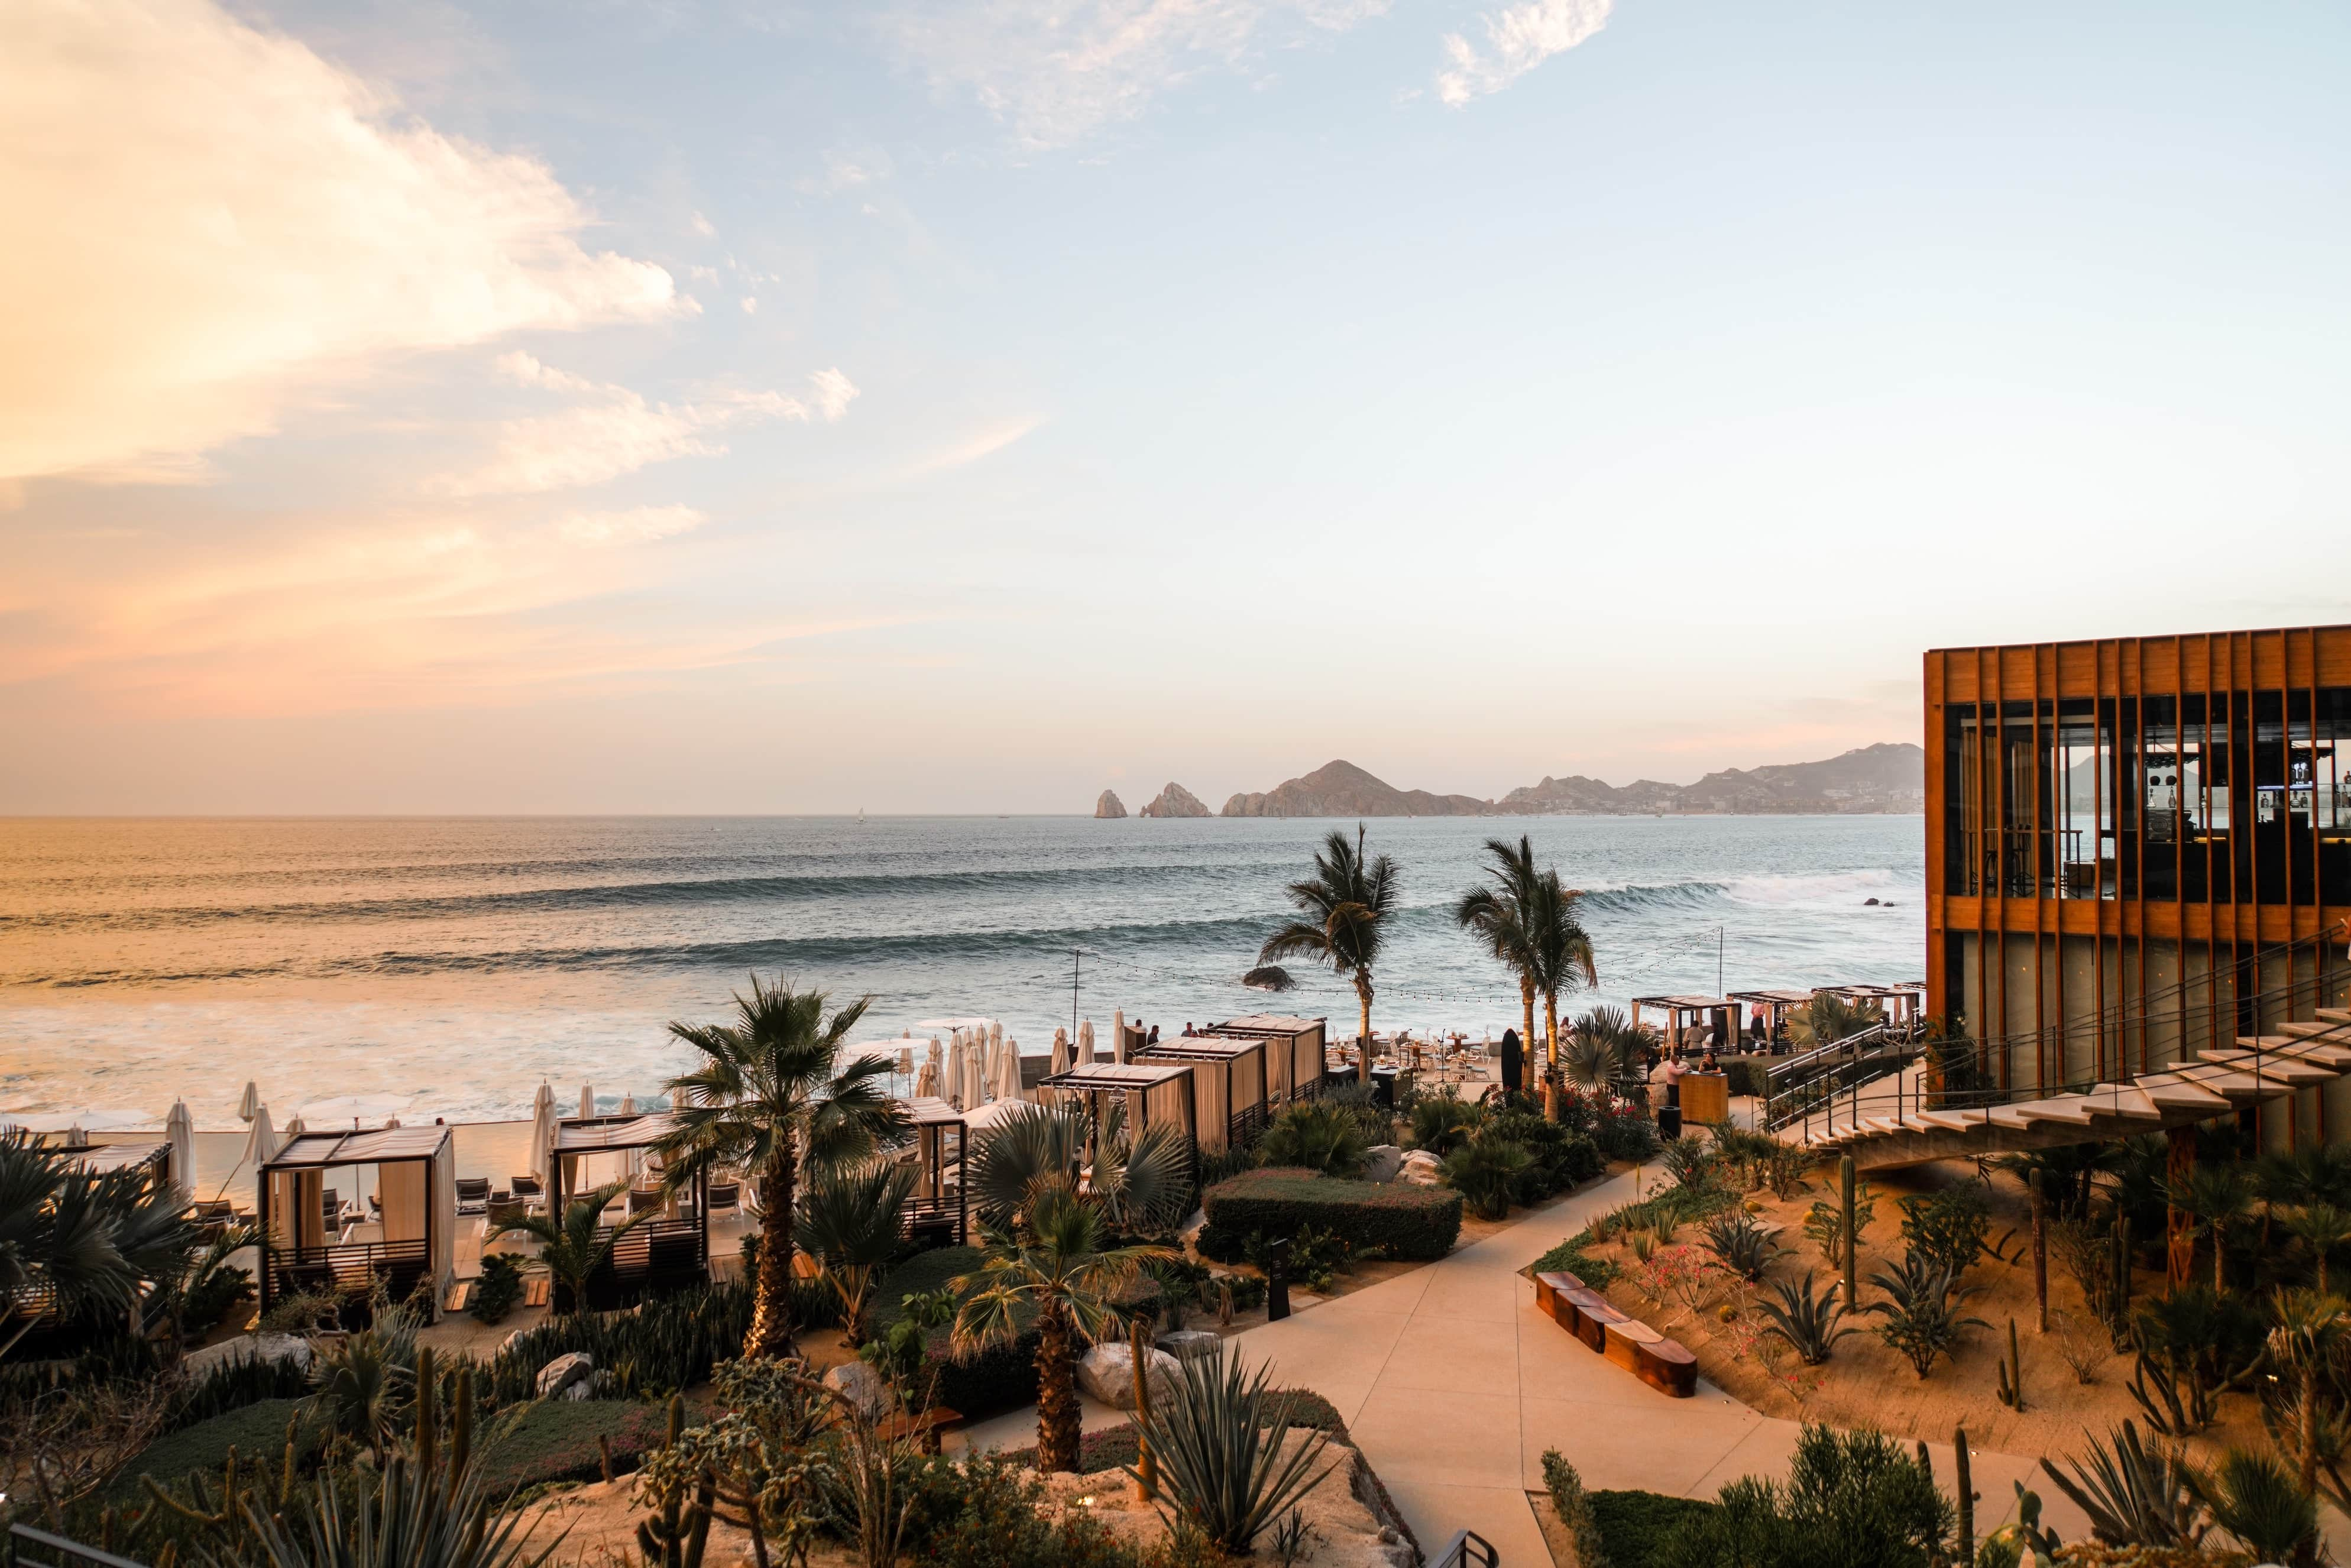 Cabo San Lucas Food Guide: Sips, Chips, Dips and Tips about Cabo